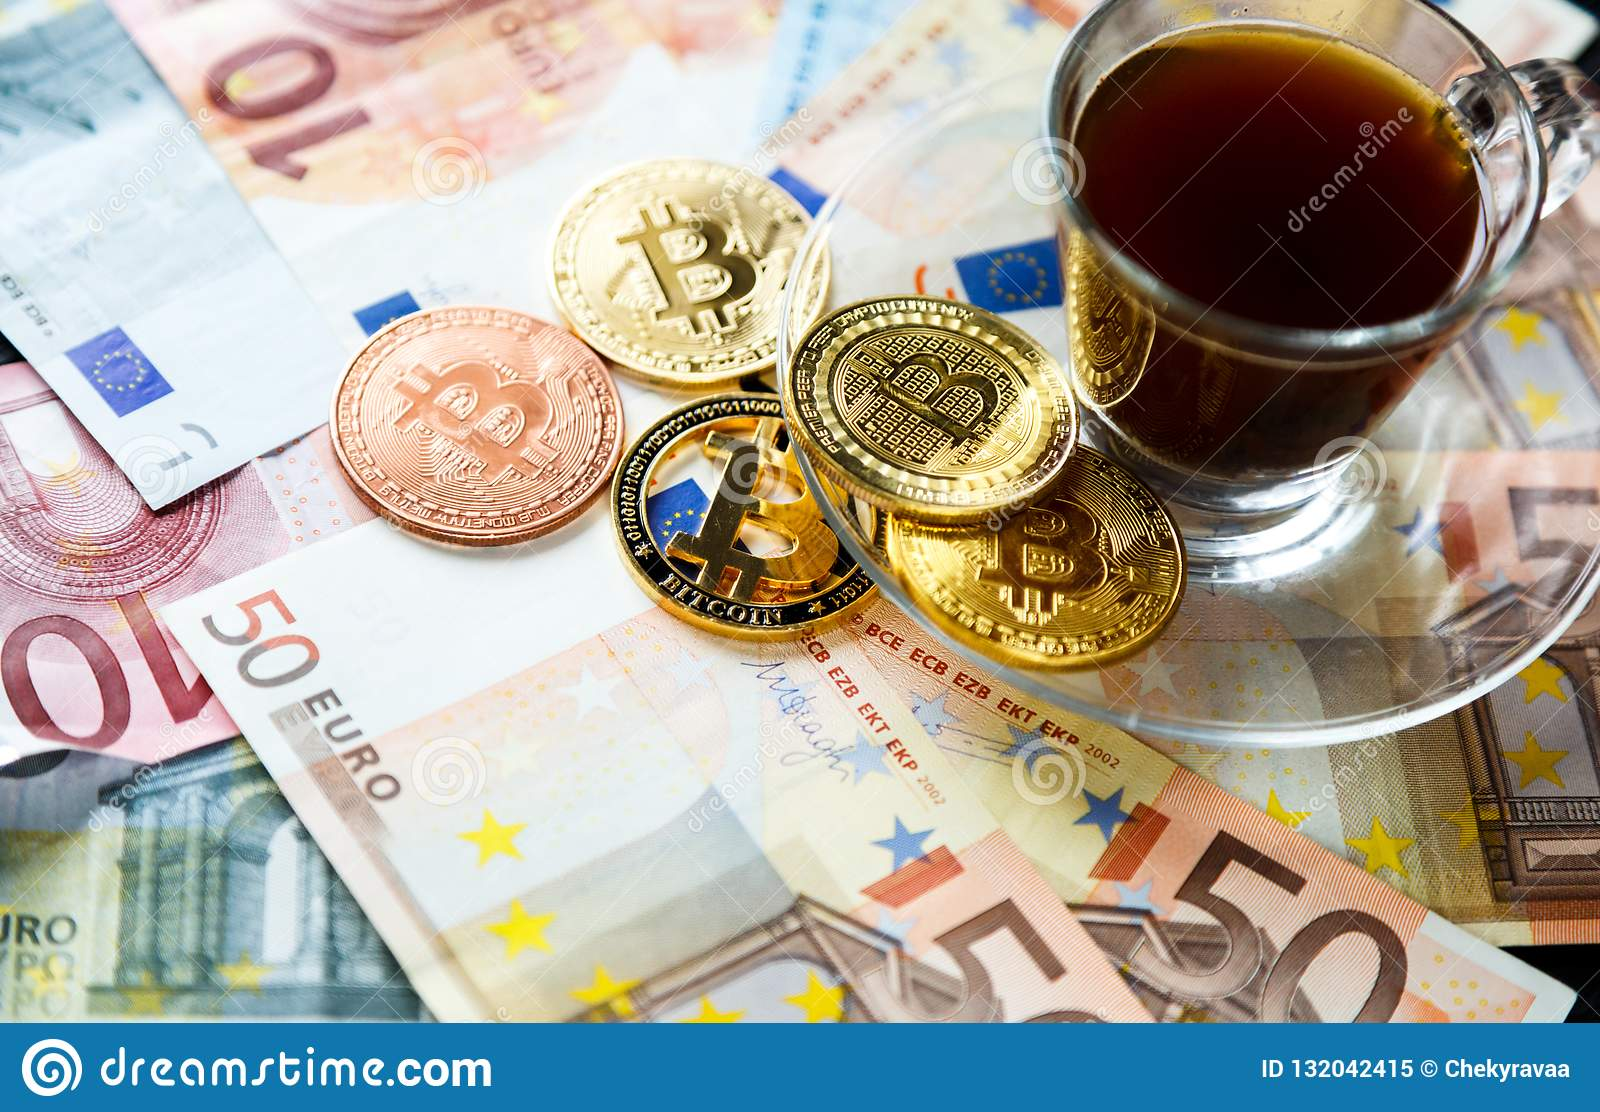 Wowcoin crypto currency investments mo1 public betting